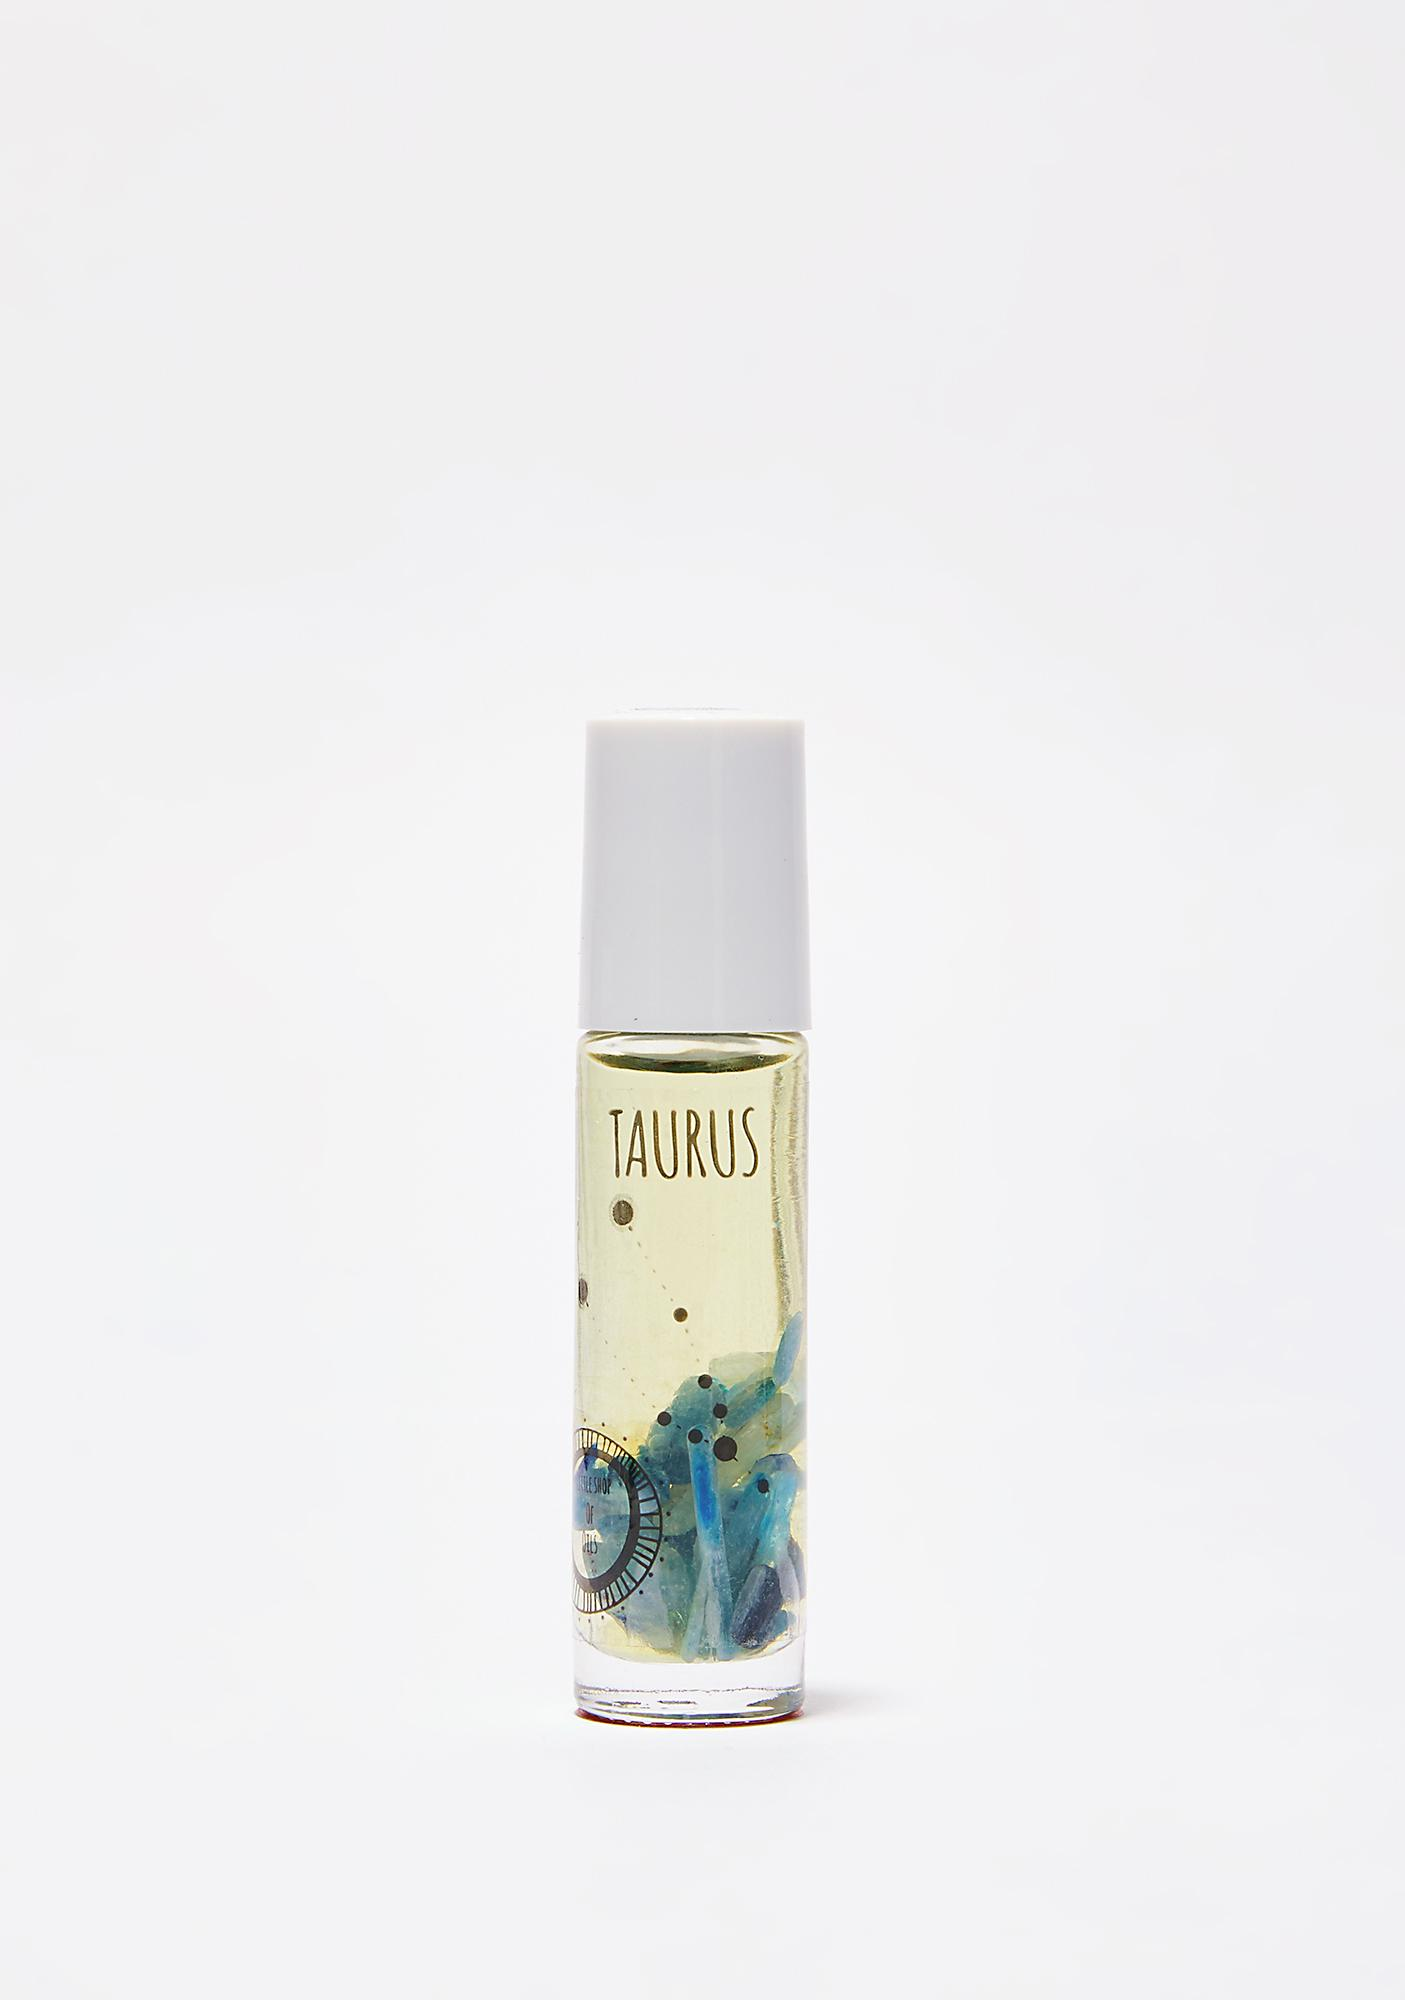 Little Shop of Oils Taurus Oil Perfume Roller